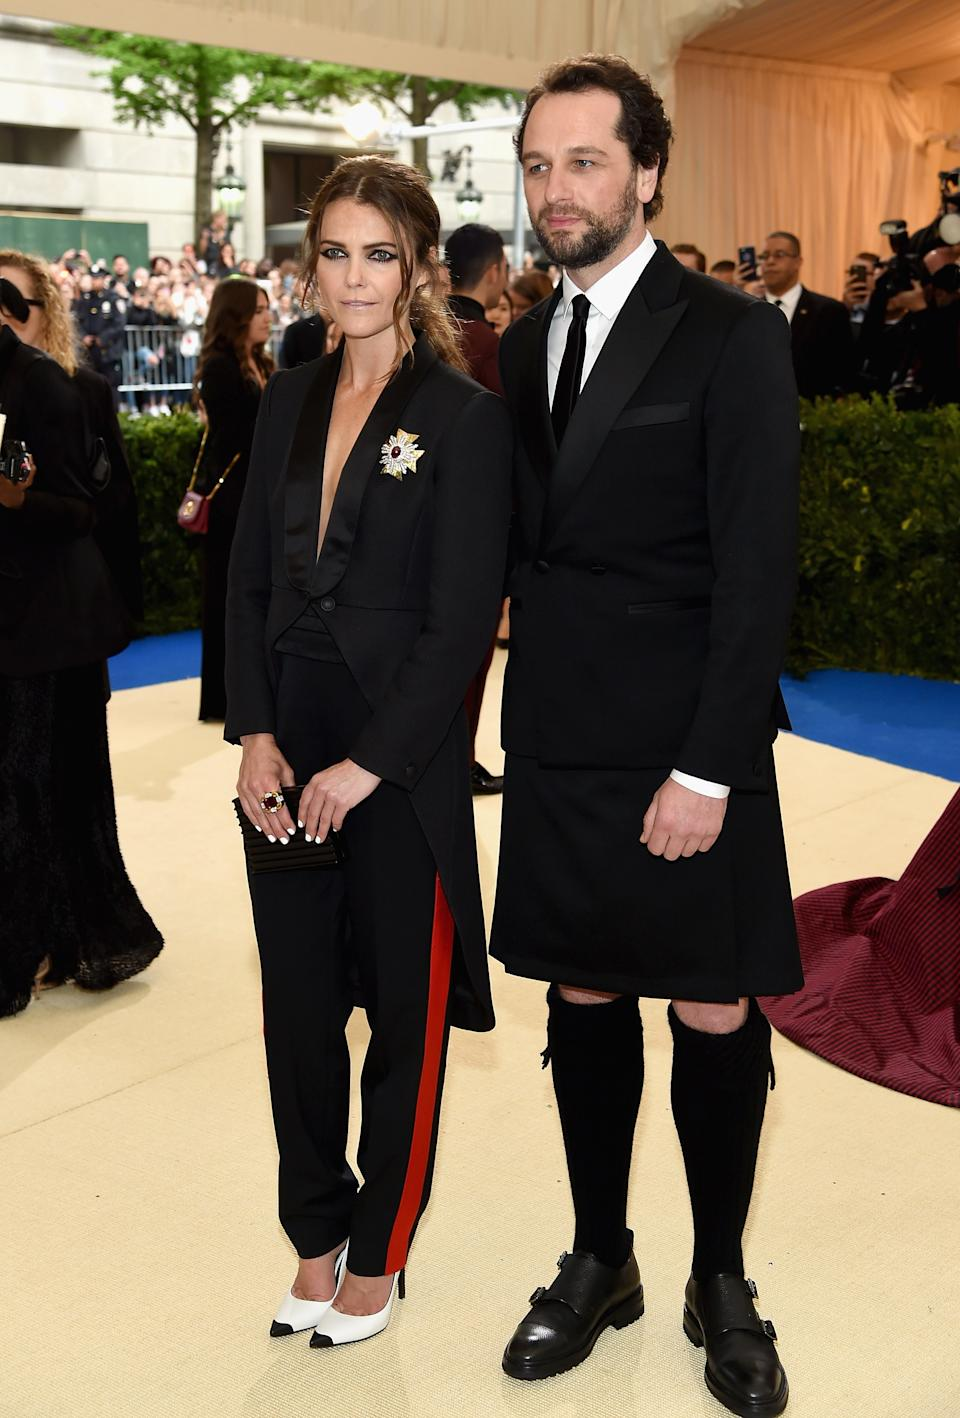 """<h1 class=""""title"""">Keri Russell in Rag & Bone and David Webb jewelry and Matthew Rhys</h1><cite class=""""credit"""">Photo: Getty Images</cite>"""